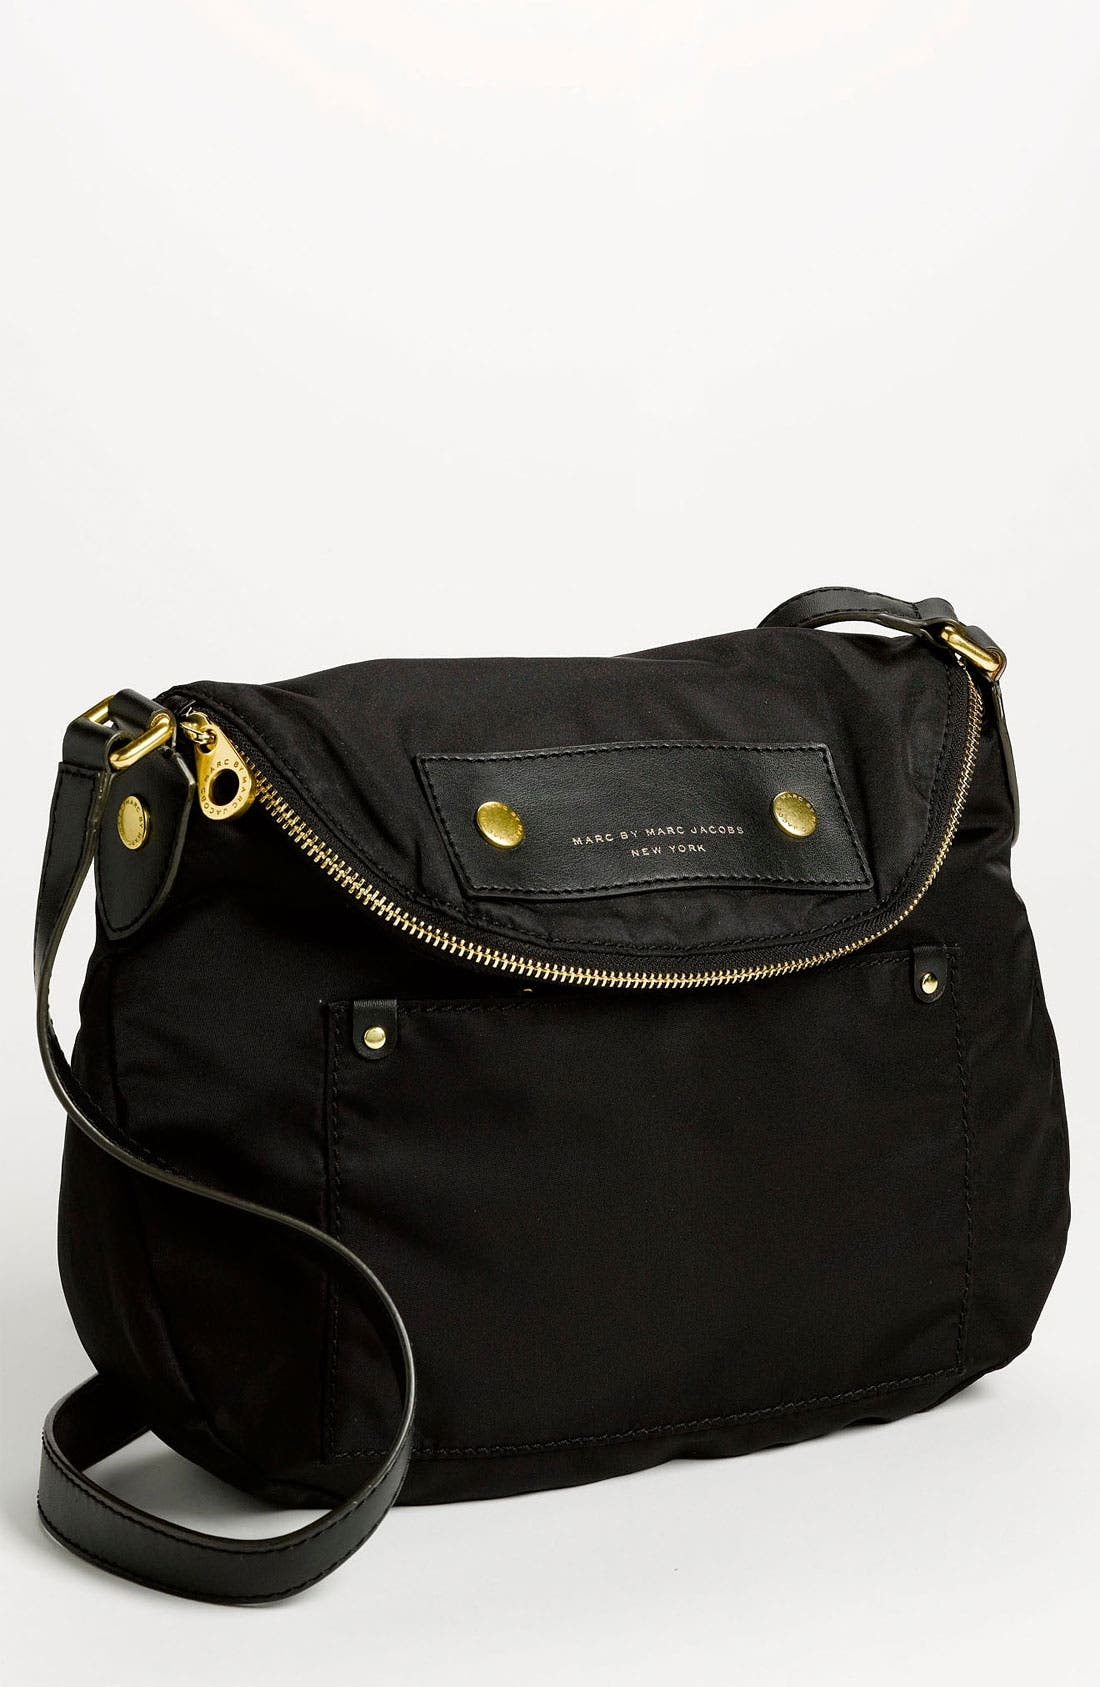 Alternate Image 1 Selected - MARC BY MARC JACOBS 'Preppy Nylon - Natasha' Crossbody Bag